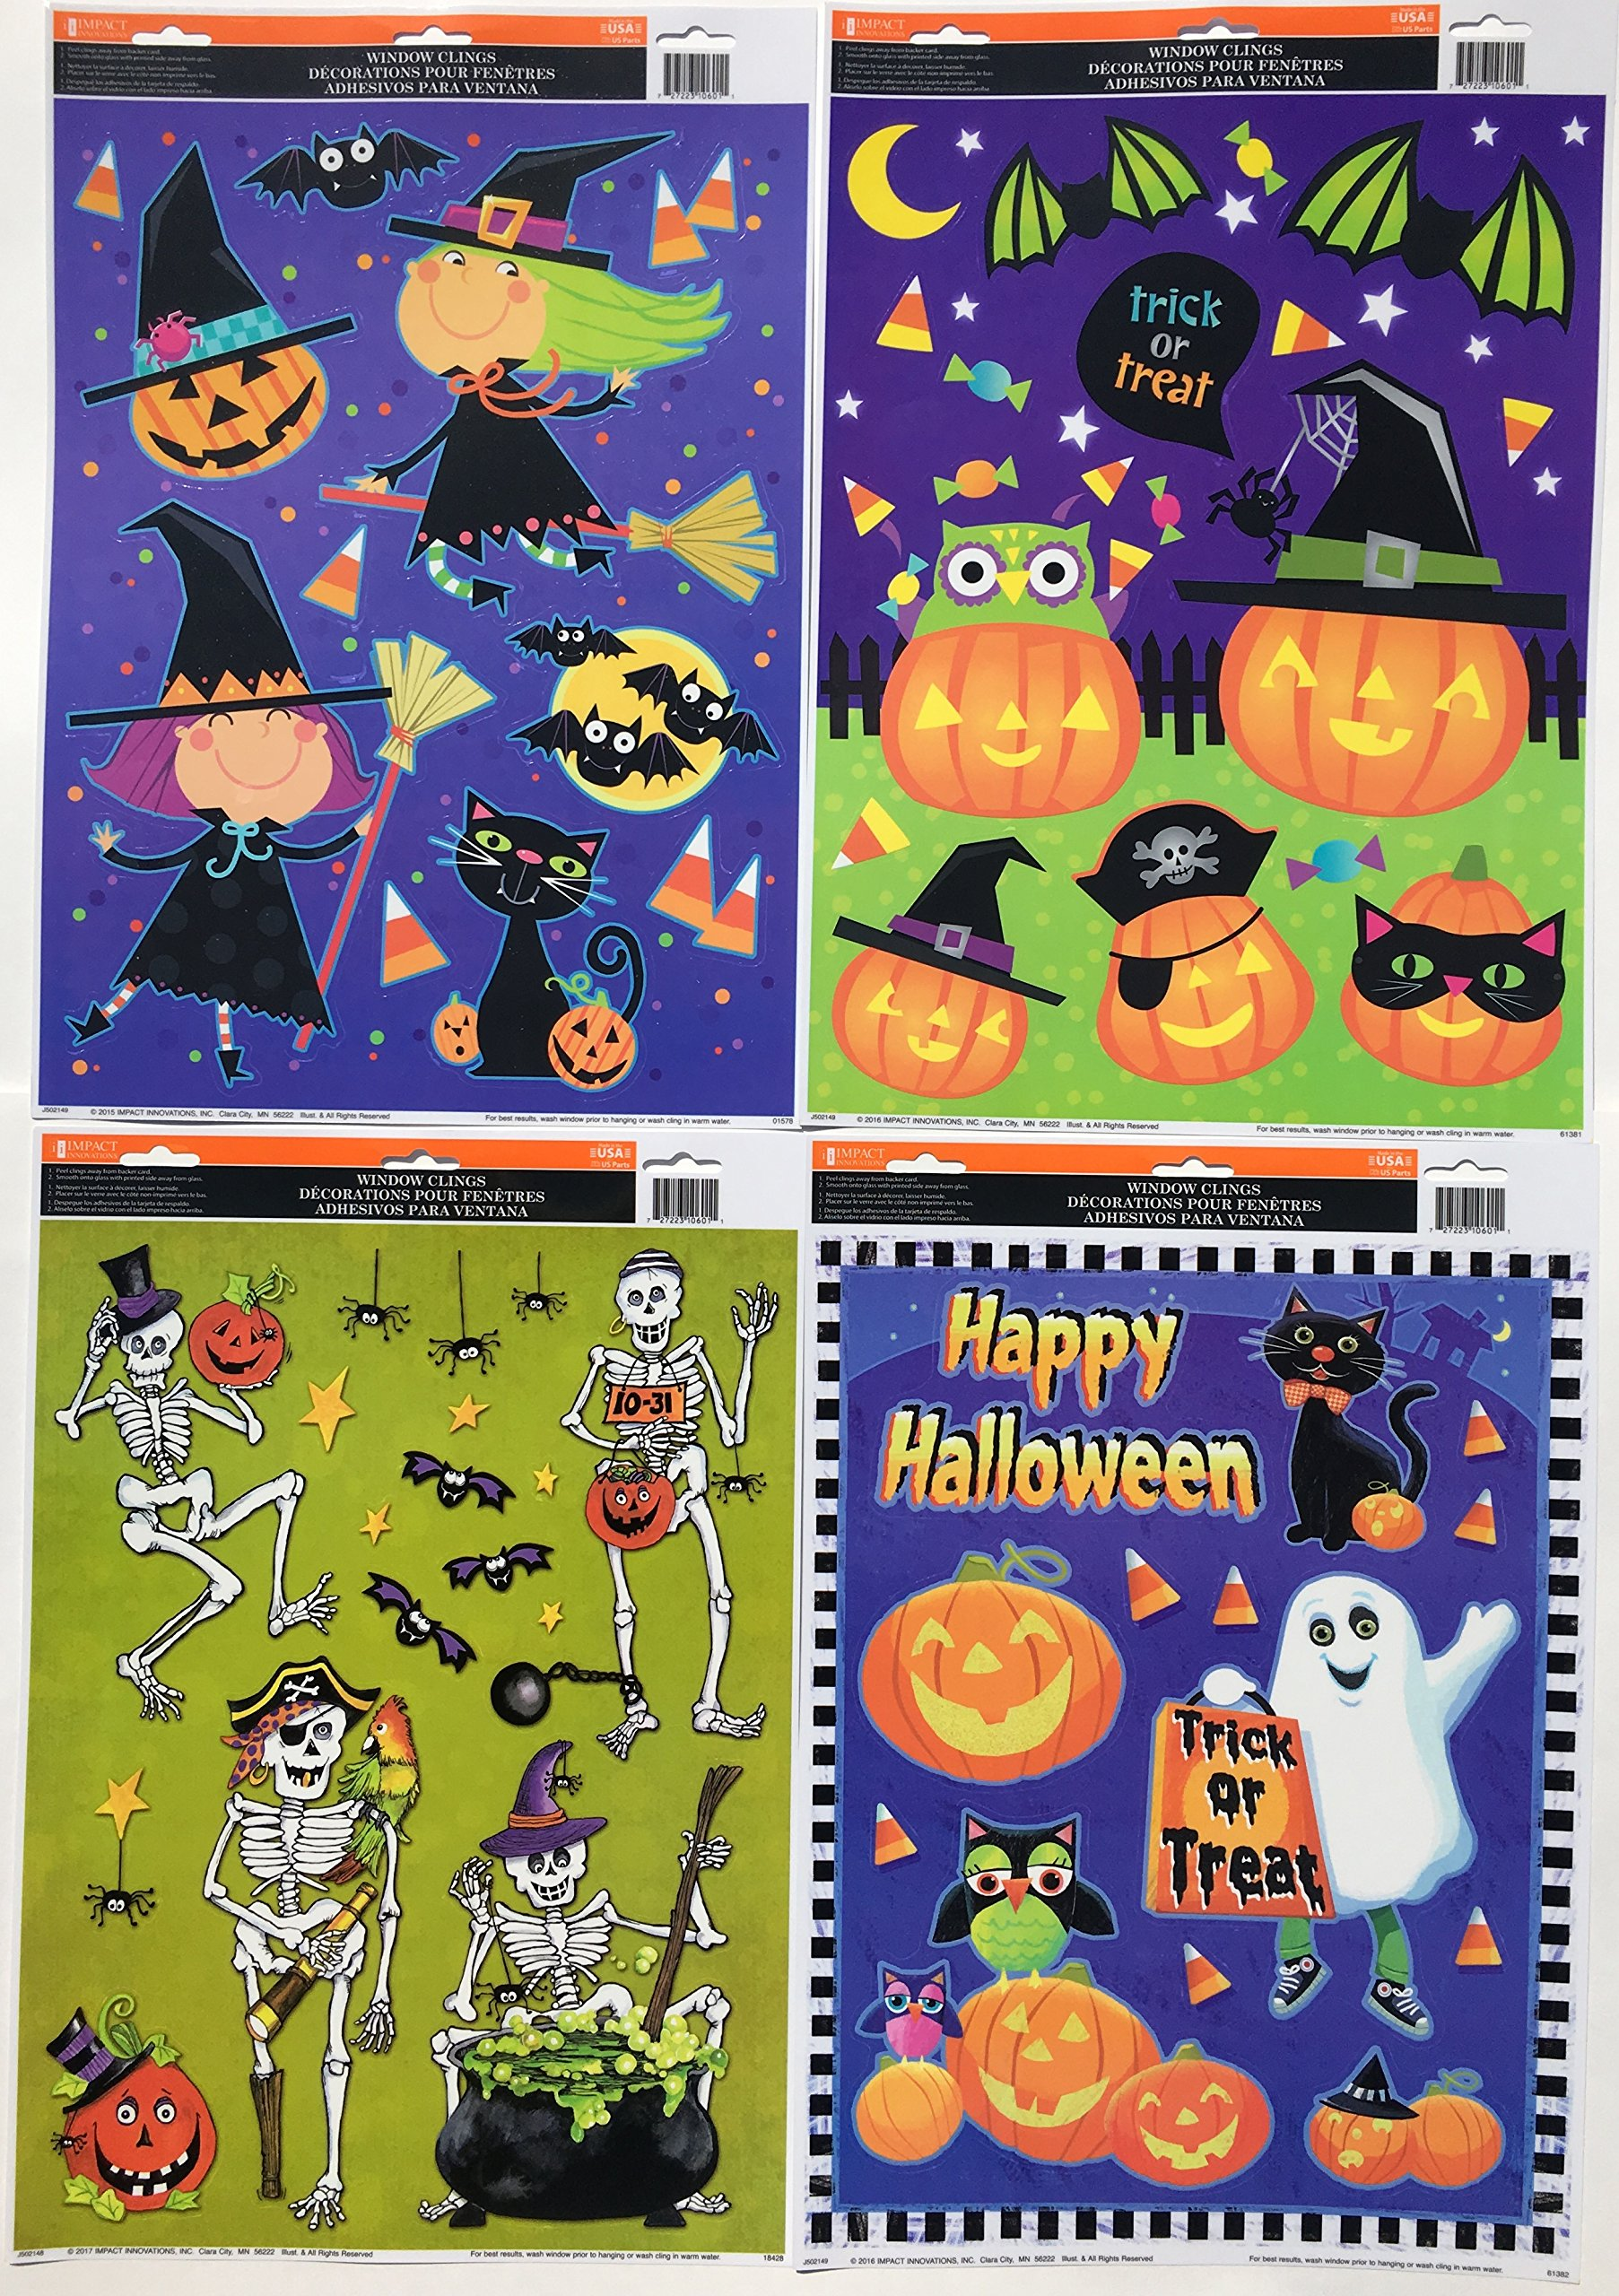 Trick or Treat! Halloween Window Clings, 4 Sheets!